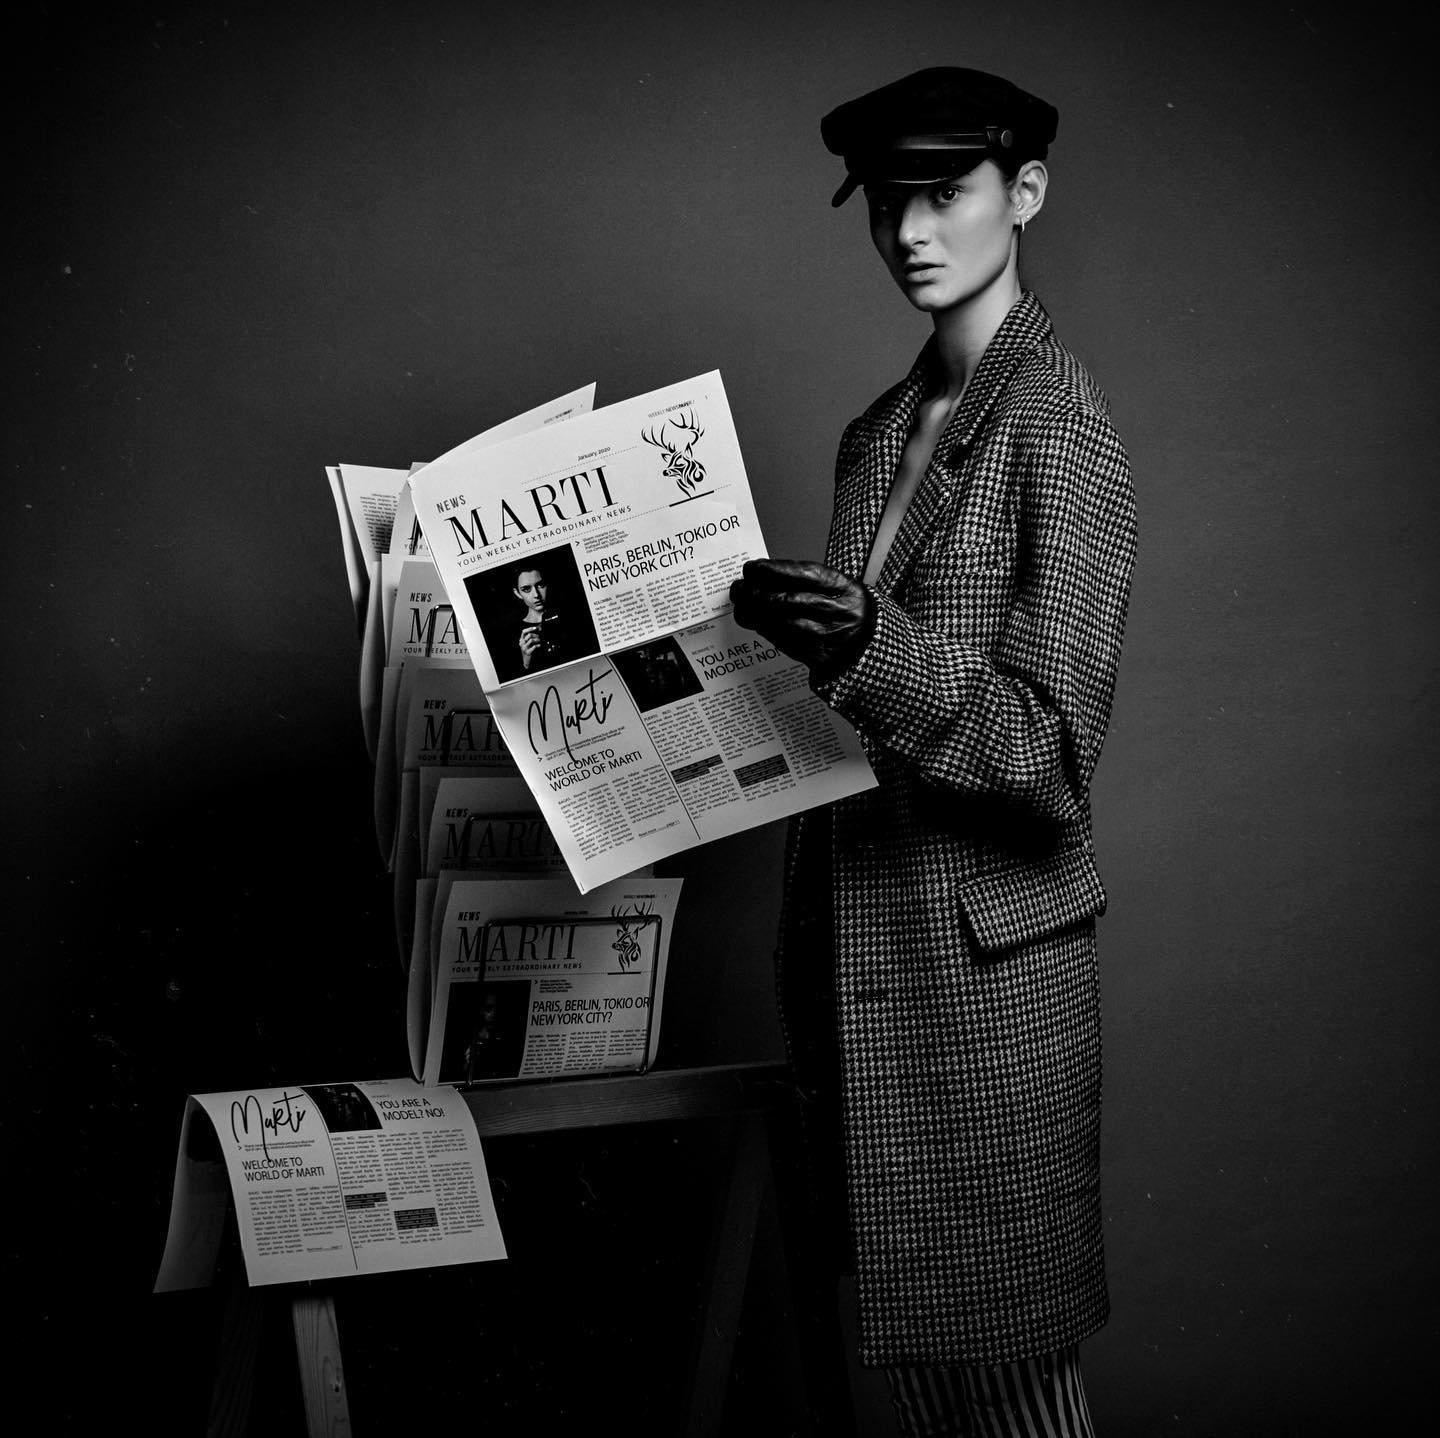 vintage fashion woman me love germanblogger news newspaper portrait analog proimaging blackandwhite Paris